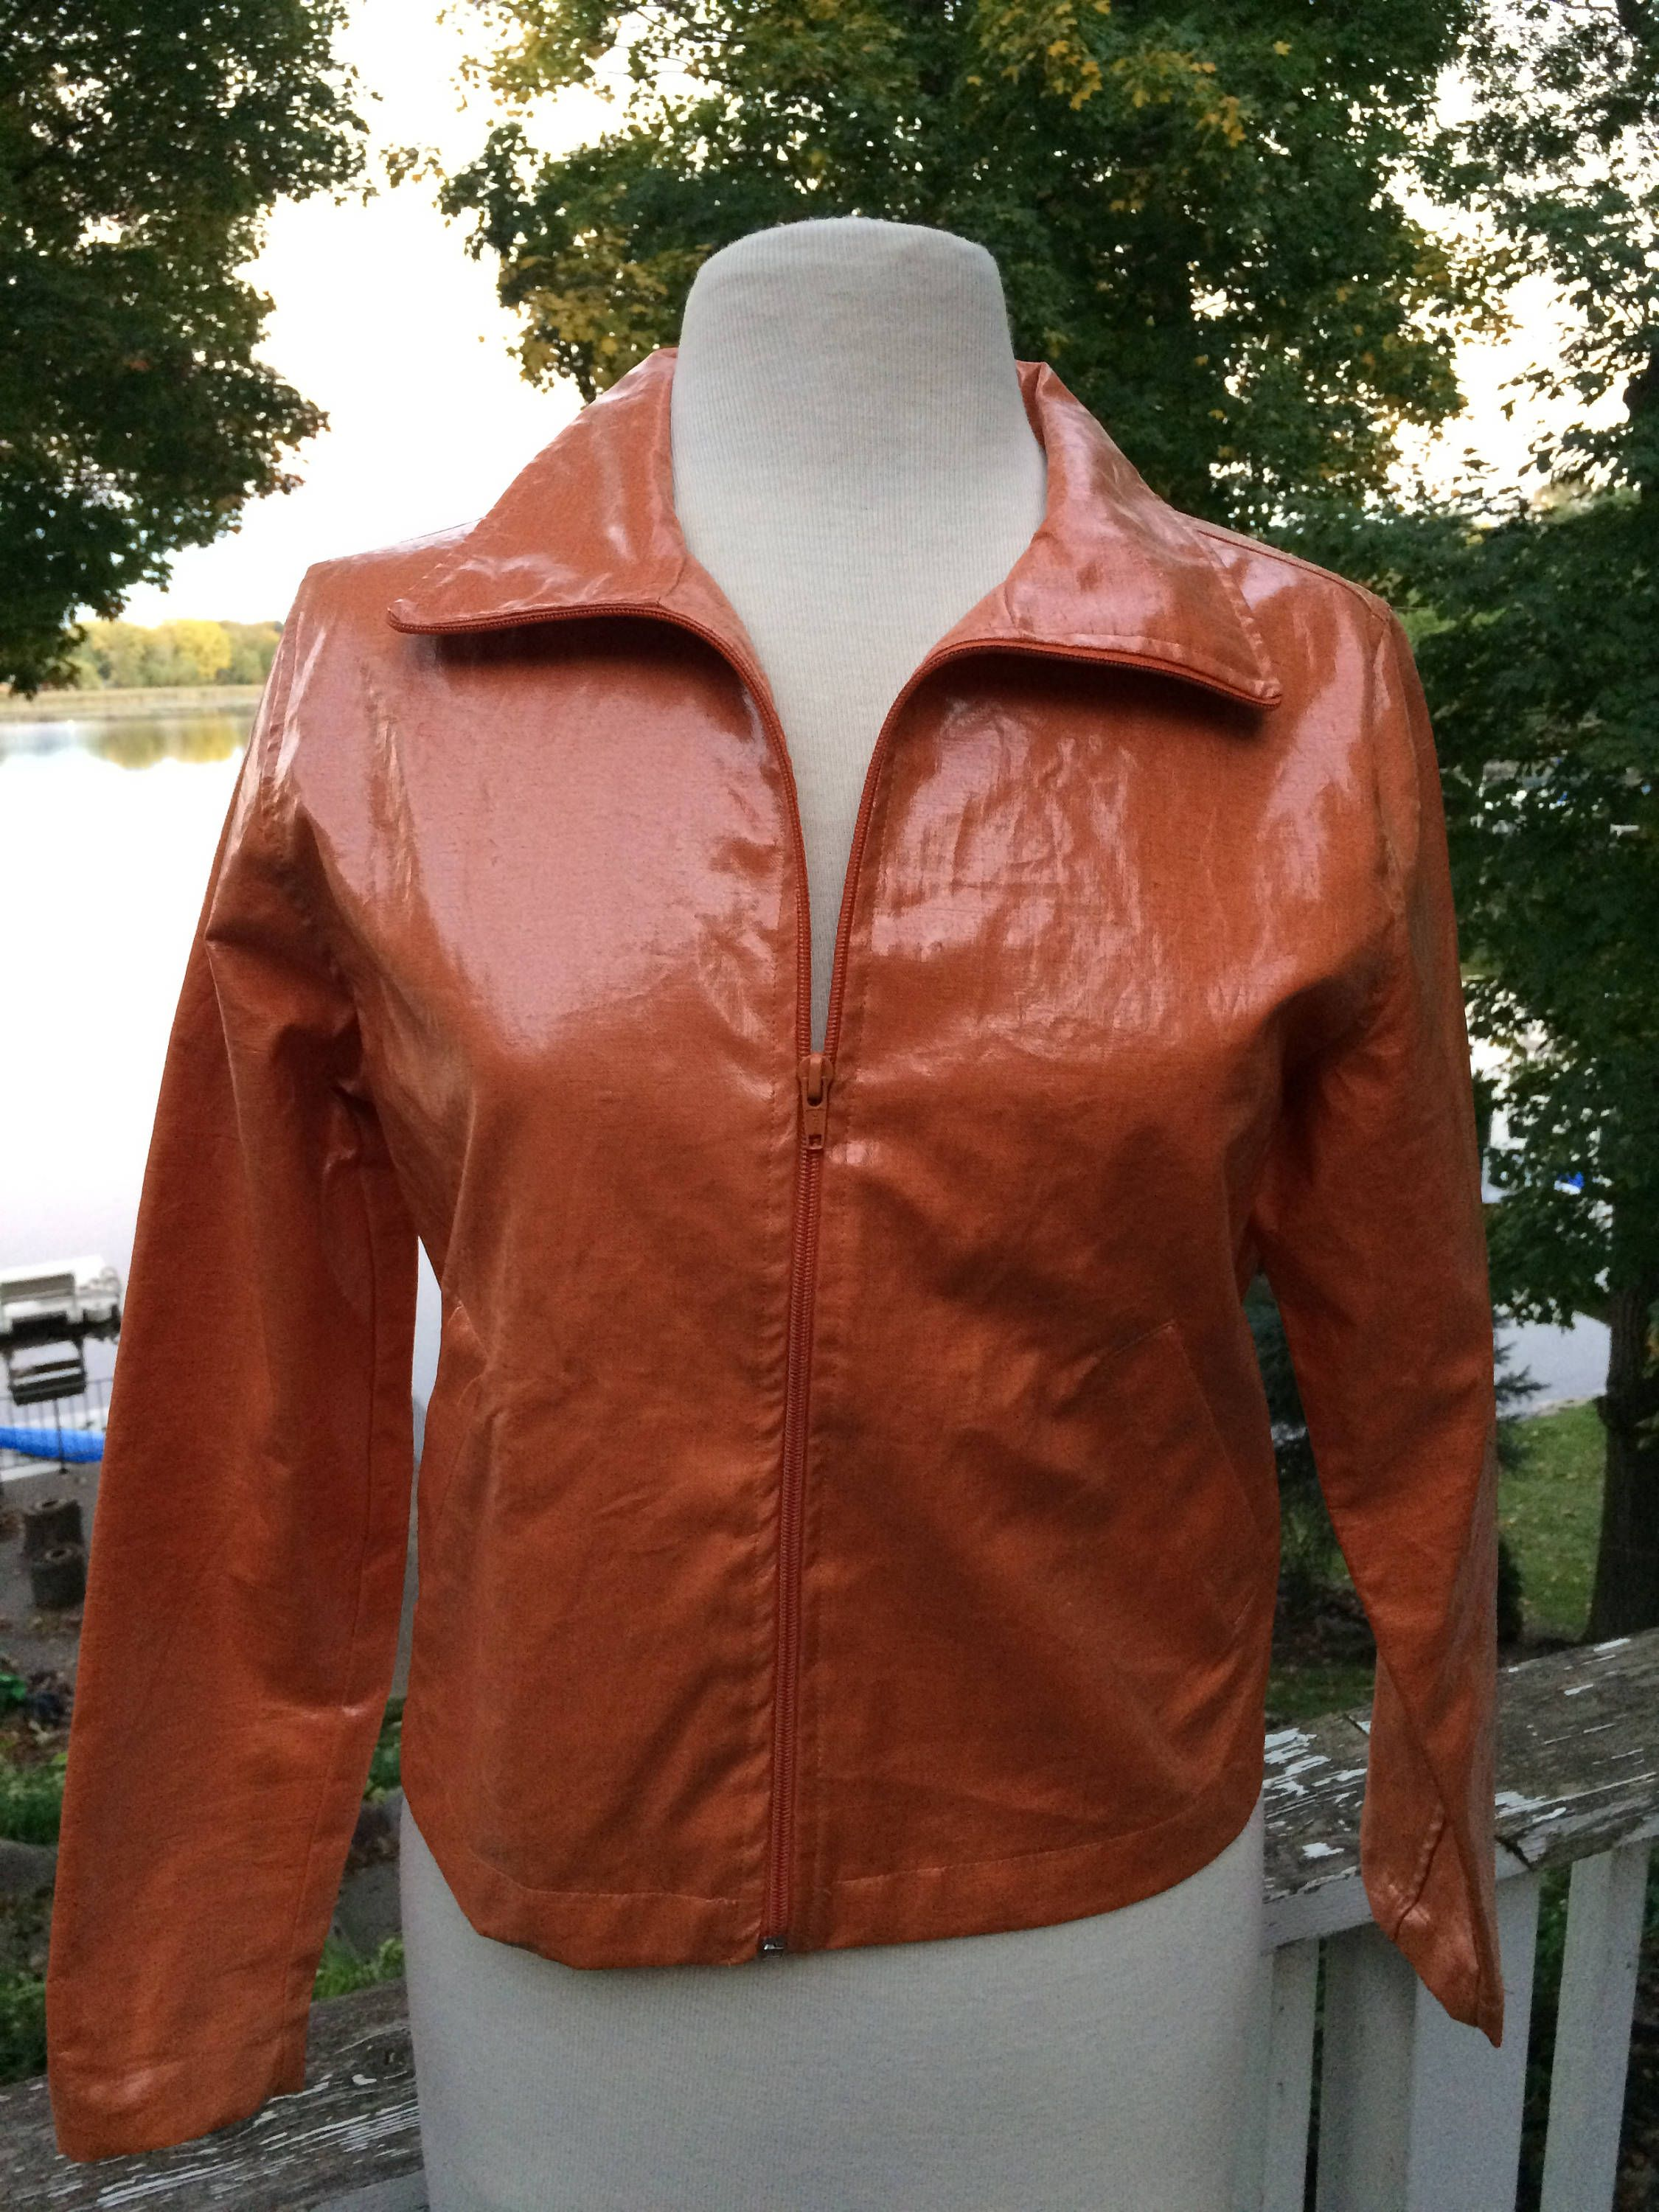 1970s Pleather Jacket Soft Tan Vinyl Snap Groovy Hipster Boho Faux Leather Wide Collar Mens Jacket Menswear Outerwear Size XL Retro Clothing kA720D